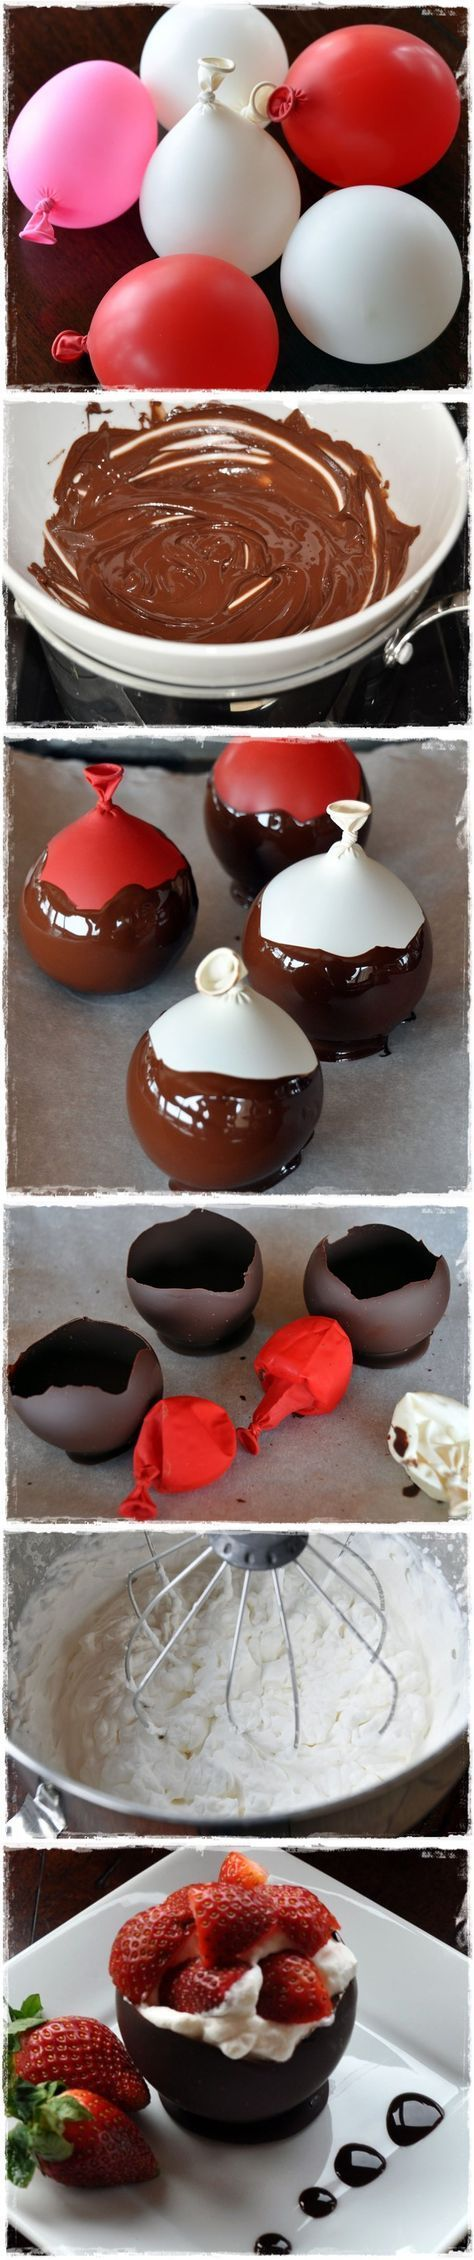 If you truly want to impress your other half with a unique and tasty chocolate dessert, this chocolate bowls are just what you are looking for.